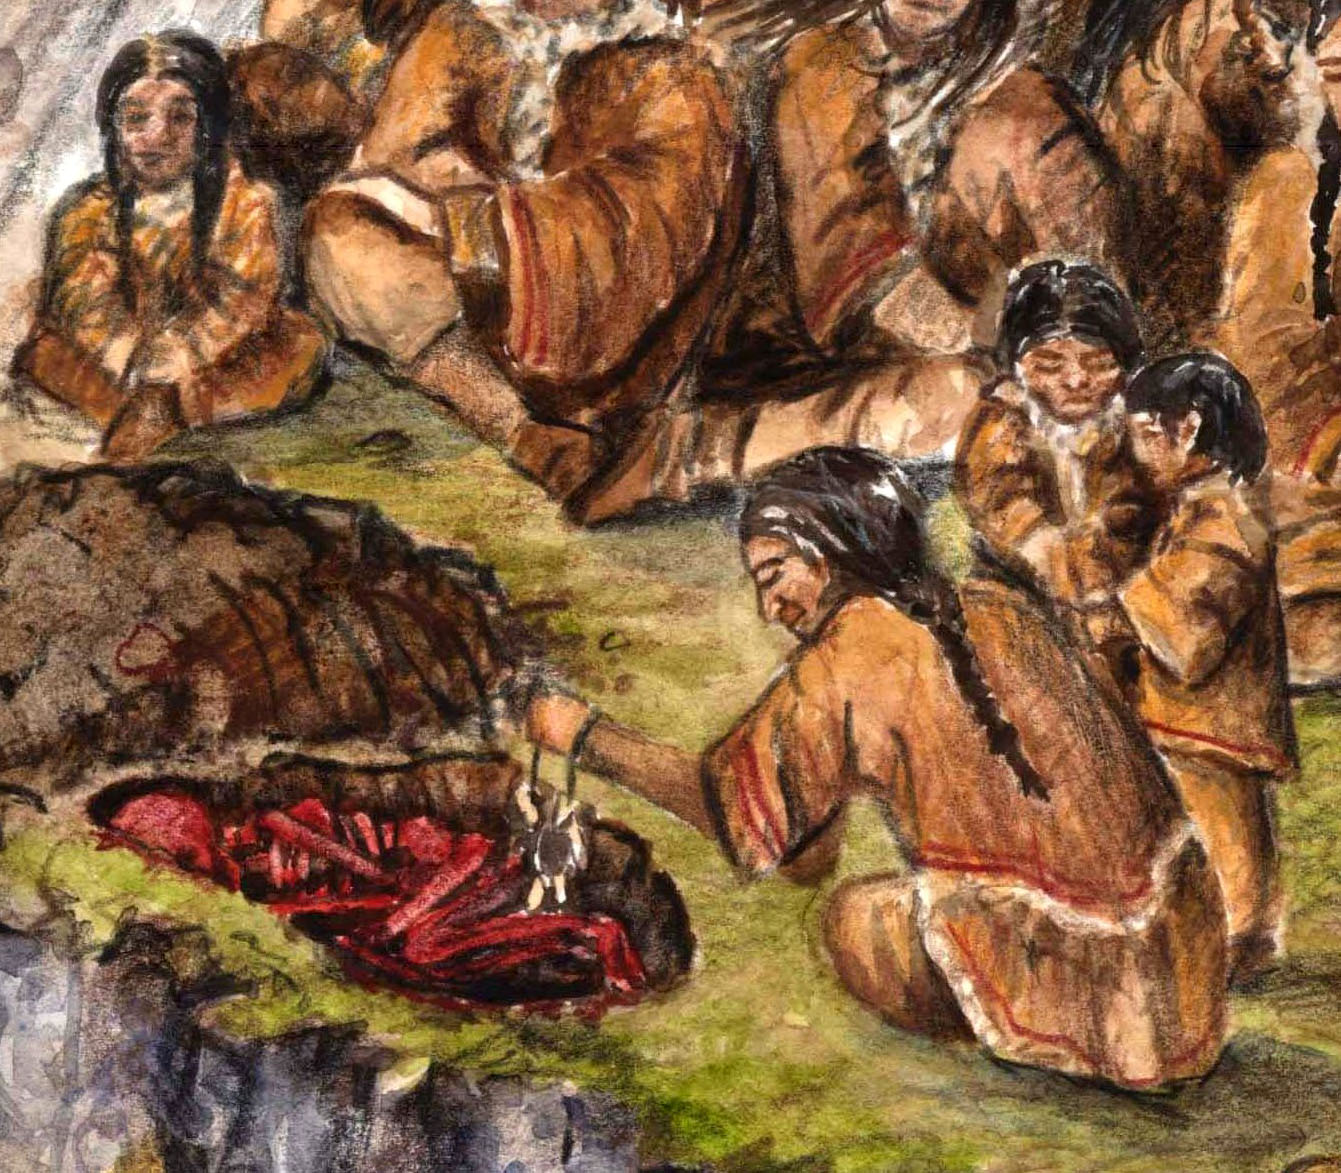 beothuk tribe The beothuk tribe of newfoundland is extinct as a cultural group it is represented in museum, historical and archaeological records reference links for this wiki.